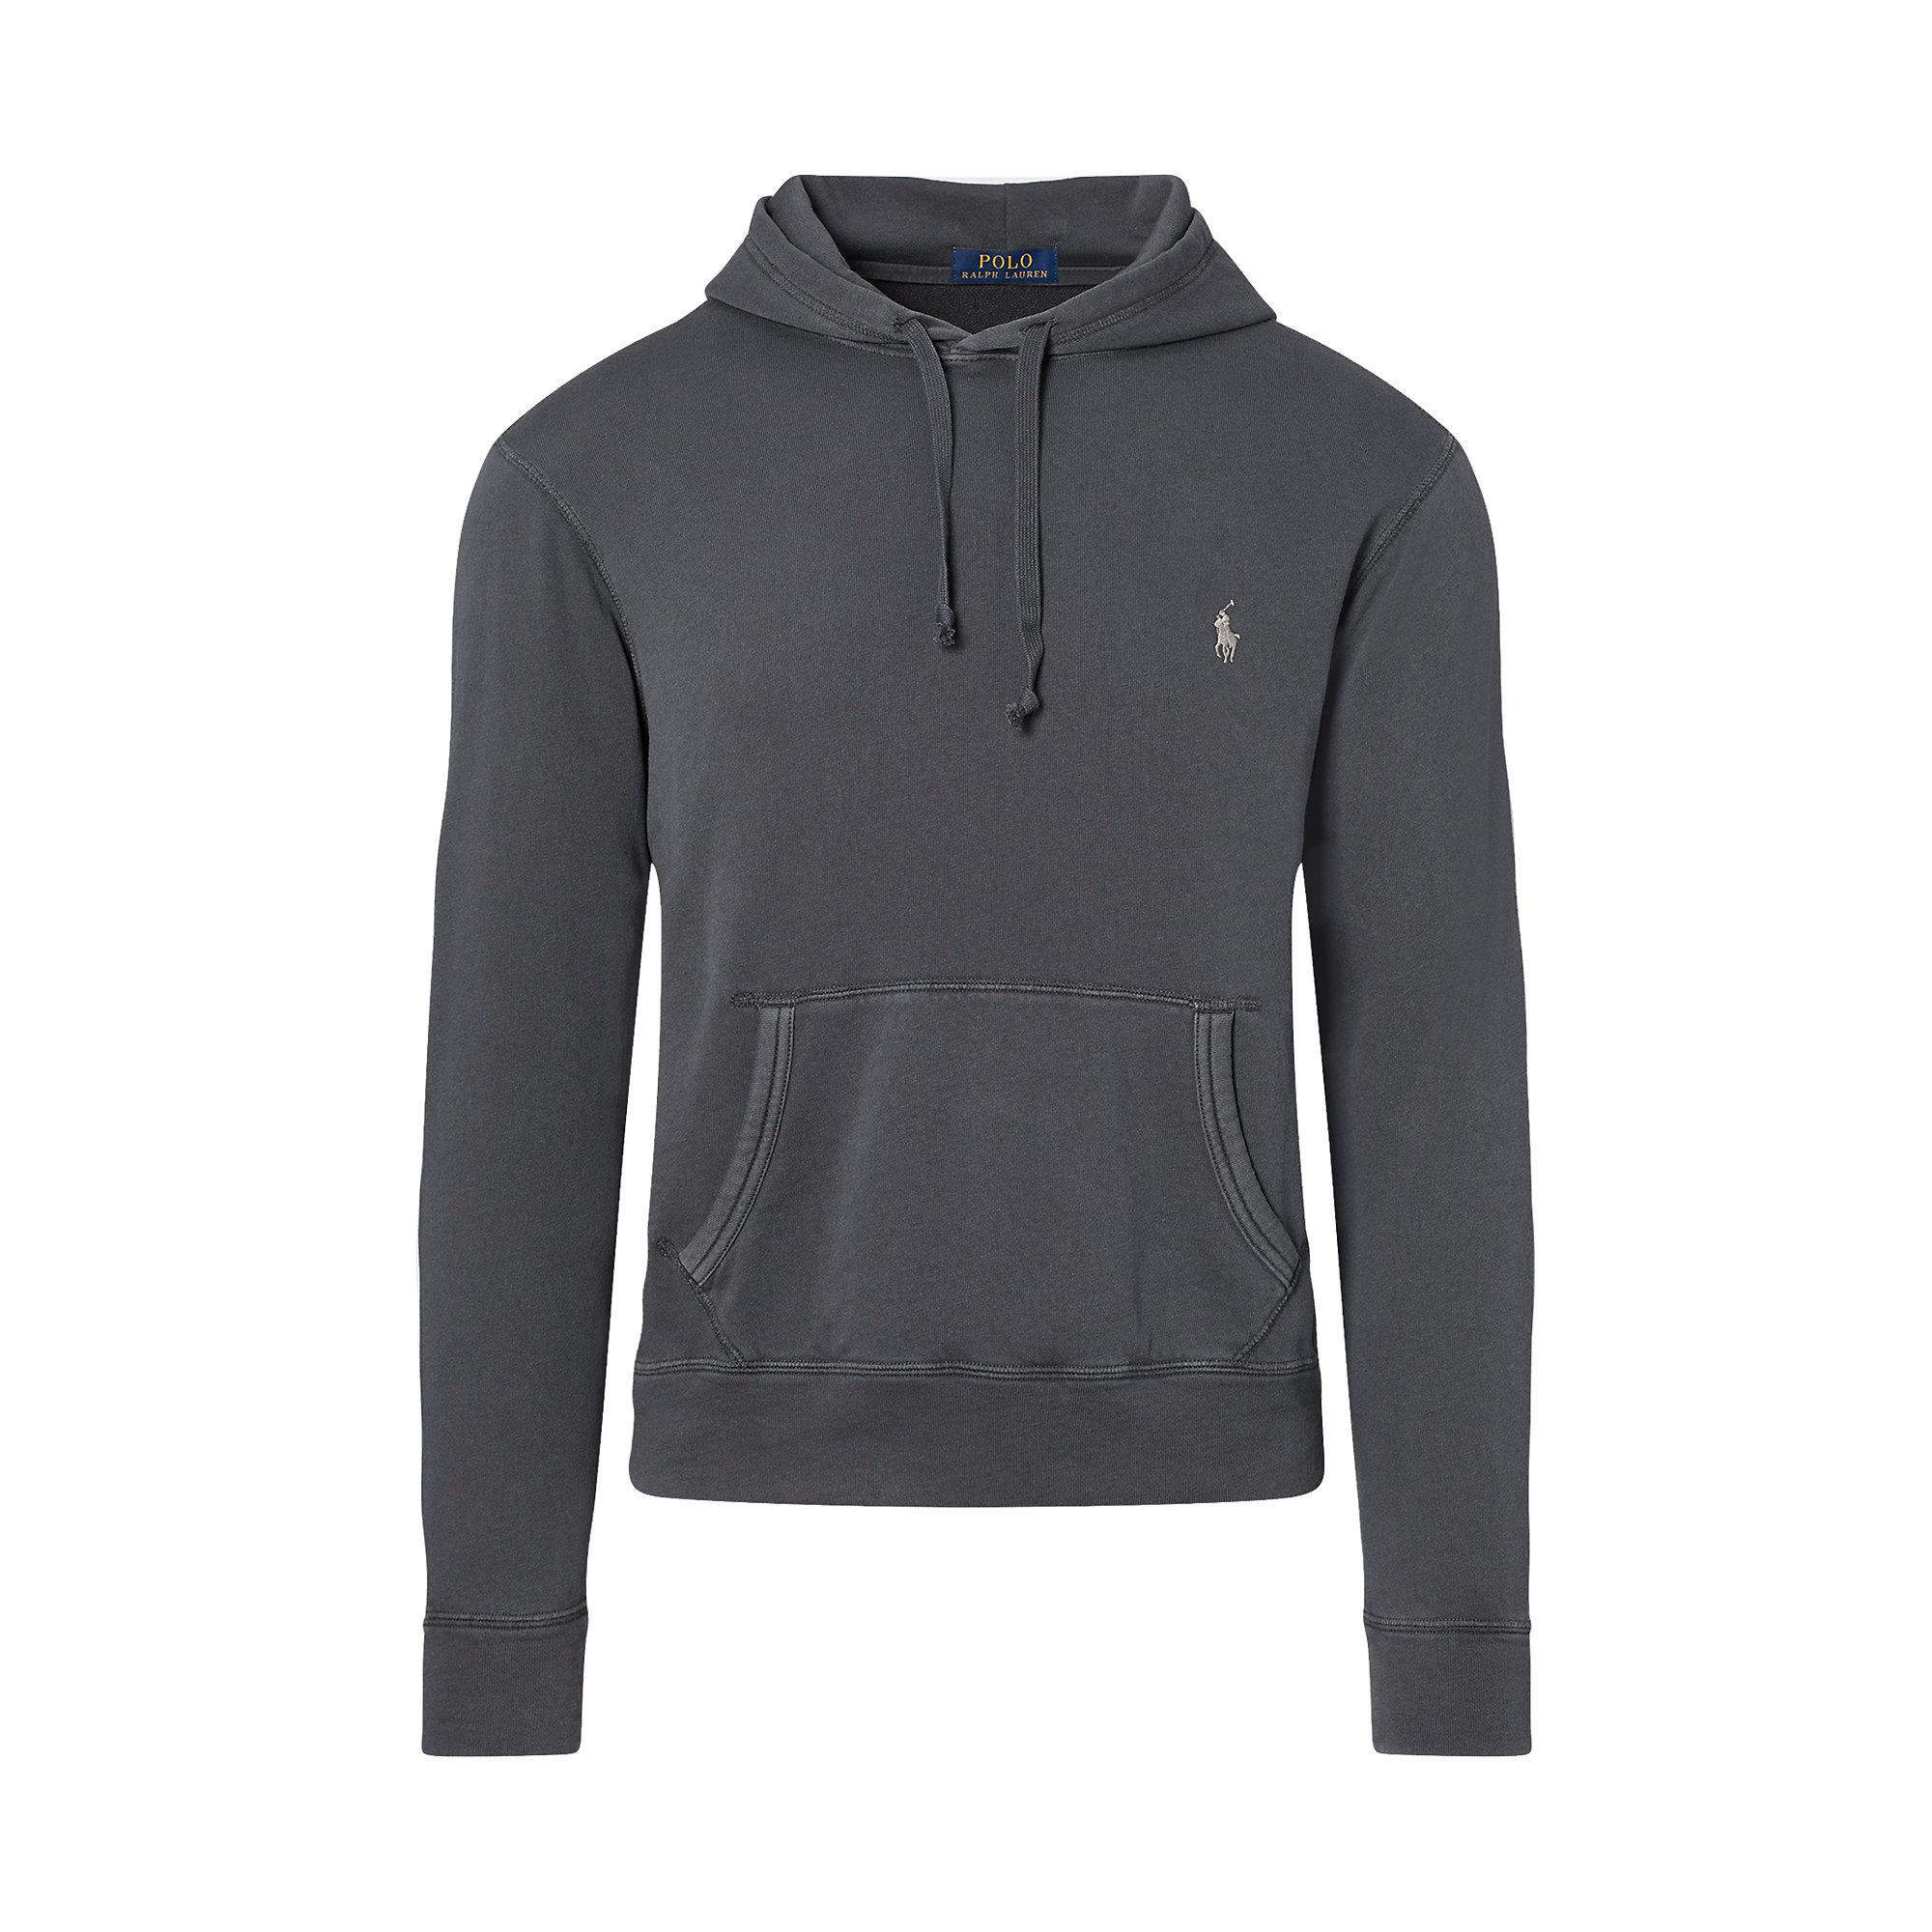 polo ralph lauren cotton spa terry hoodie in black for men lyst. Black Bedroom Furniture Sets. Home Design Ideas